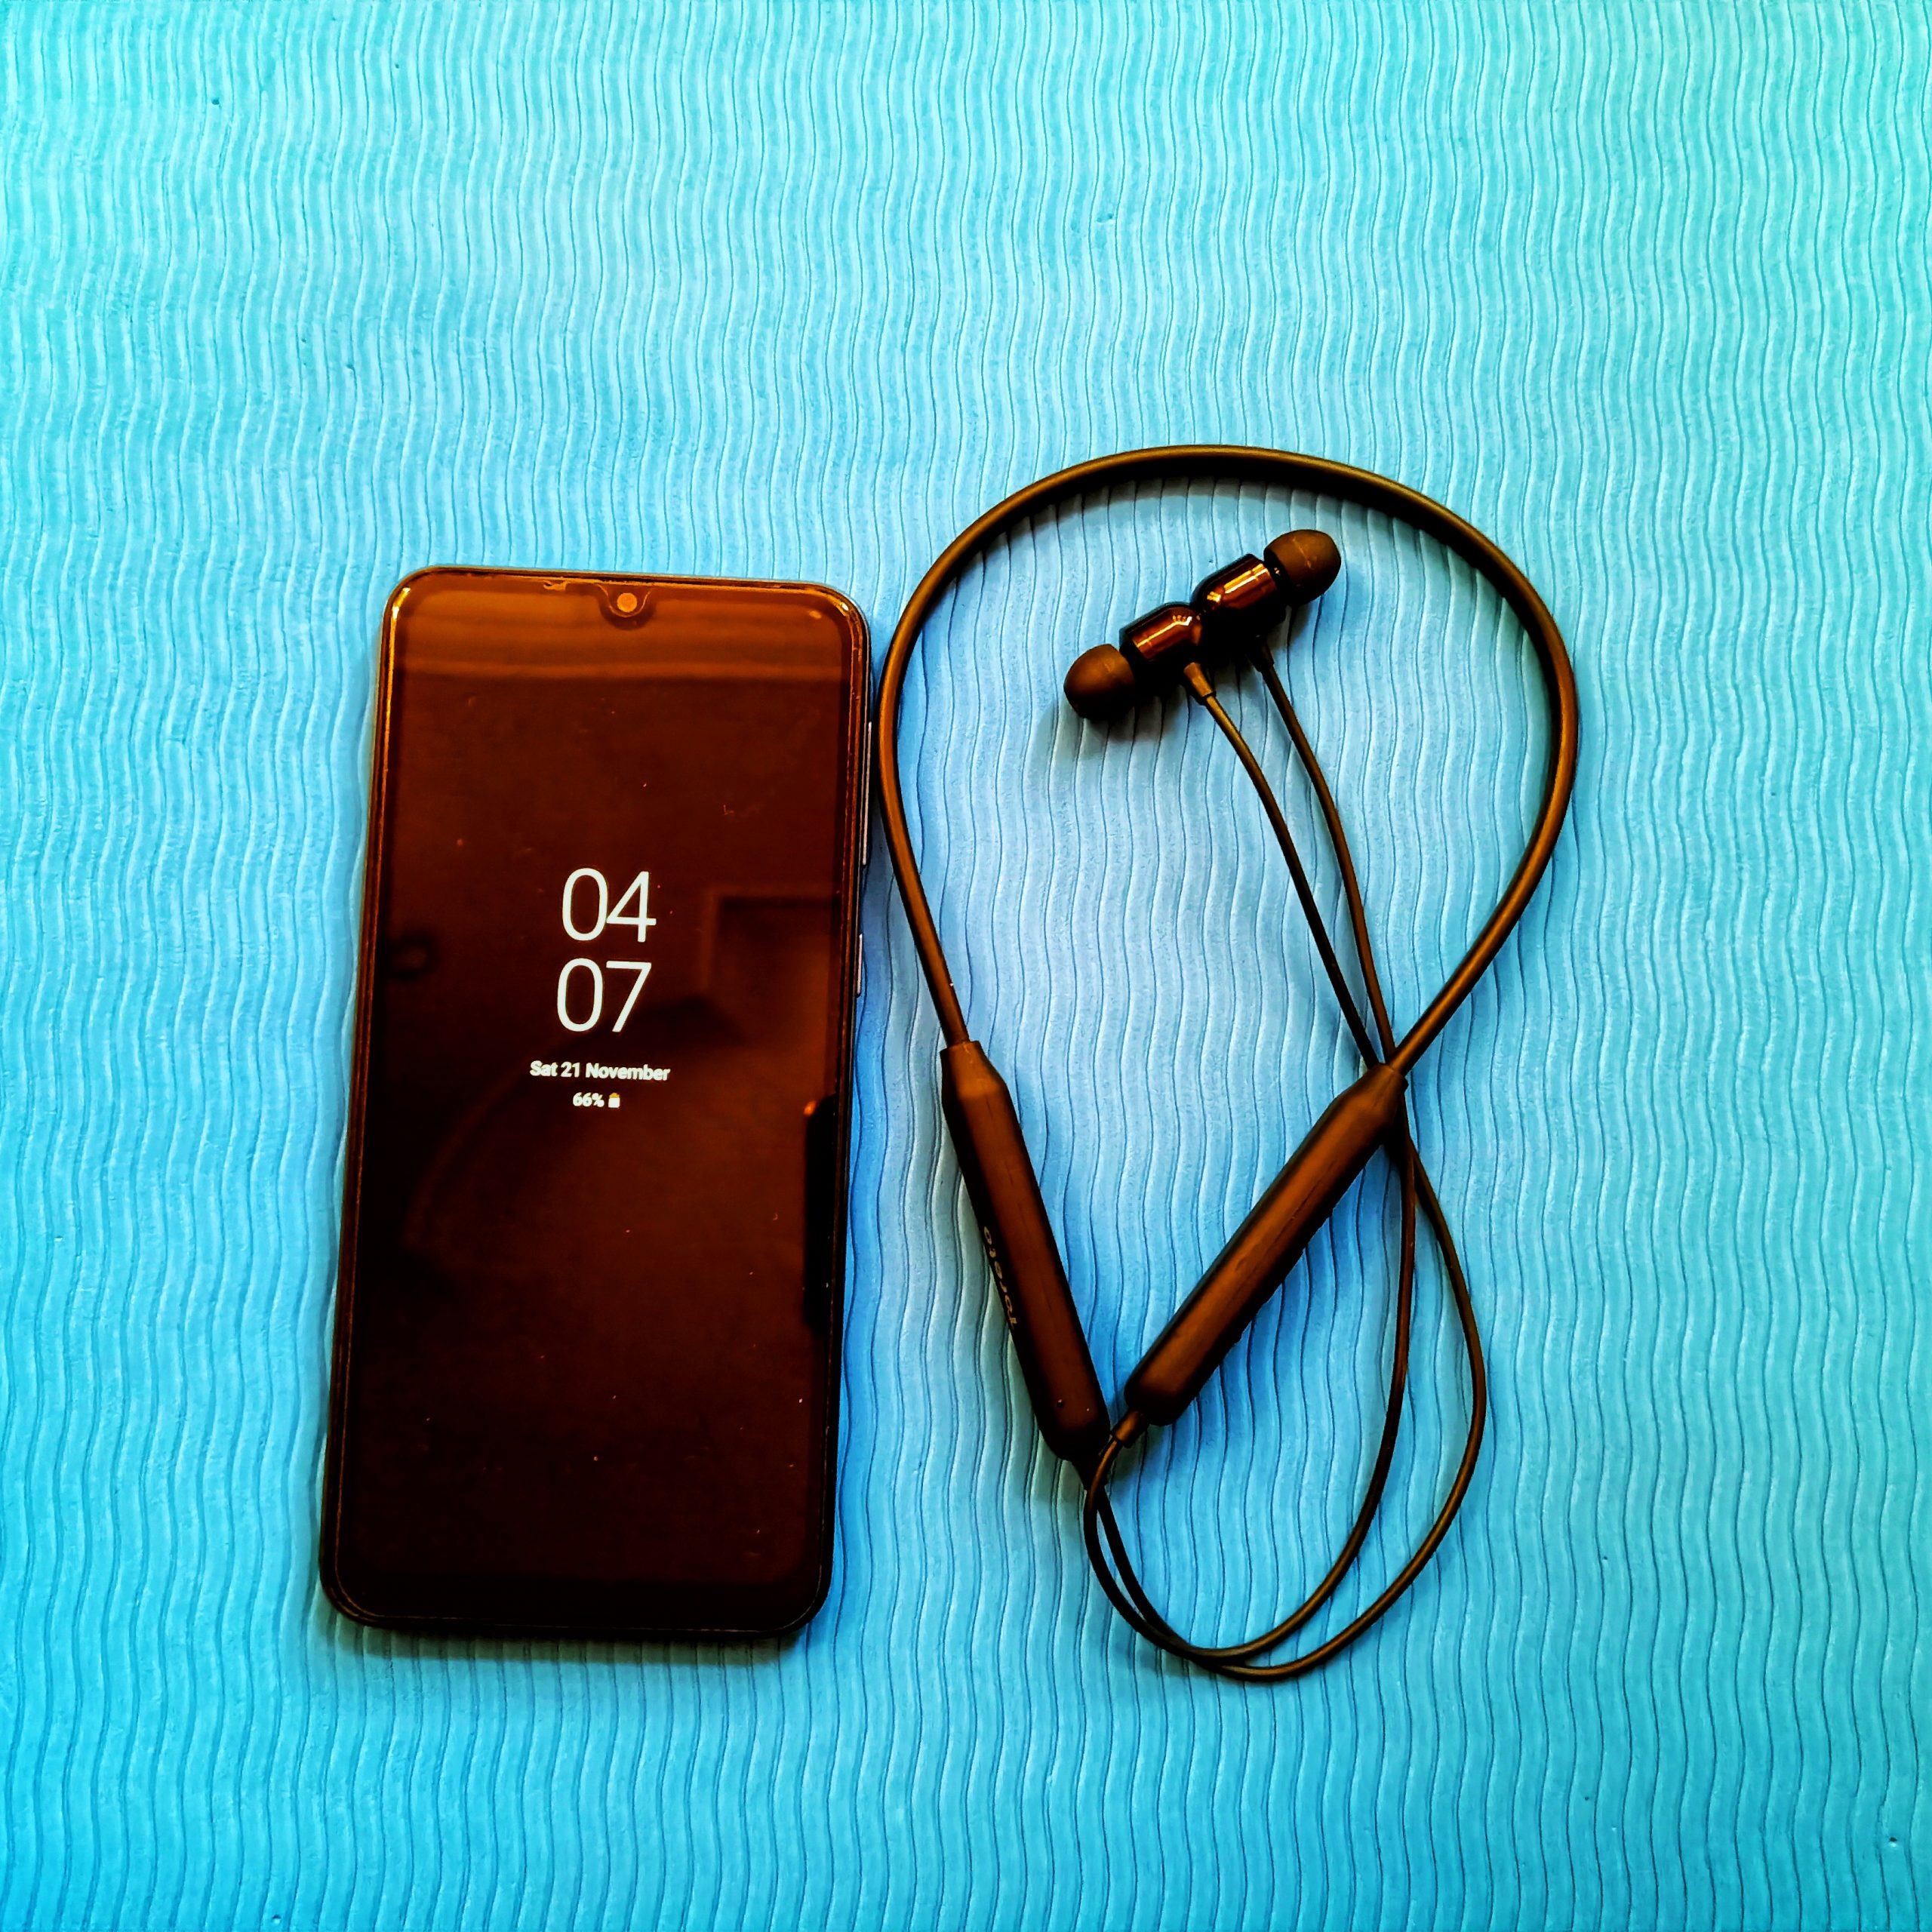 A phone and earphones